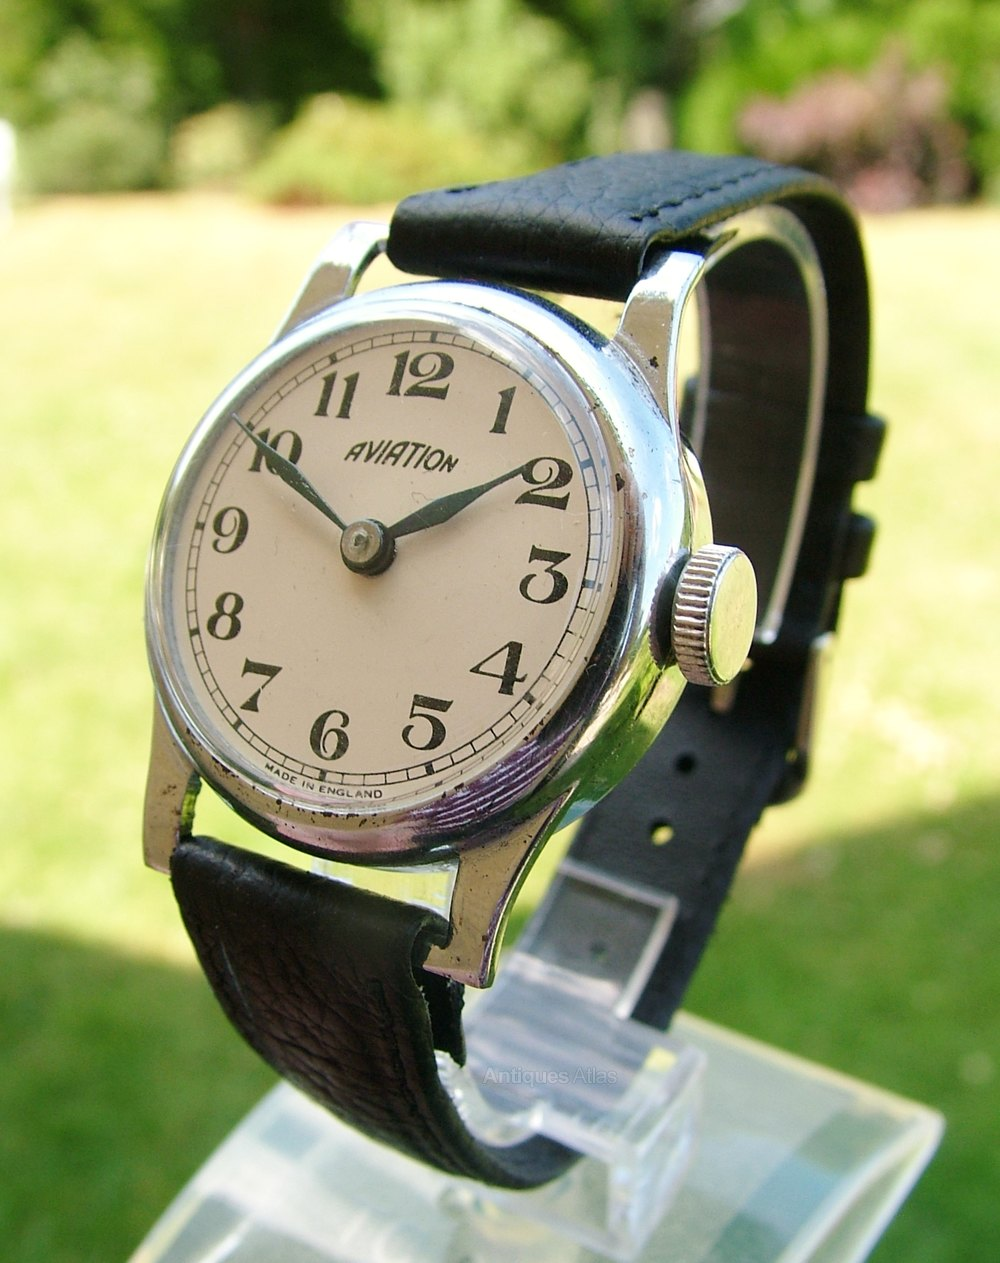 antiques atlas gents 1940s aviation wrist watch made in england